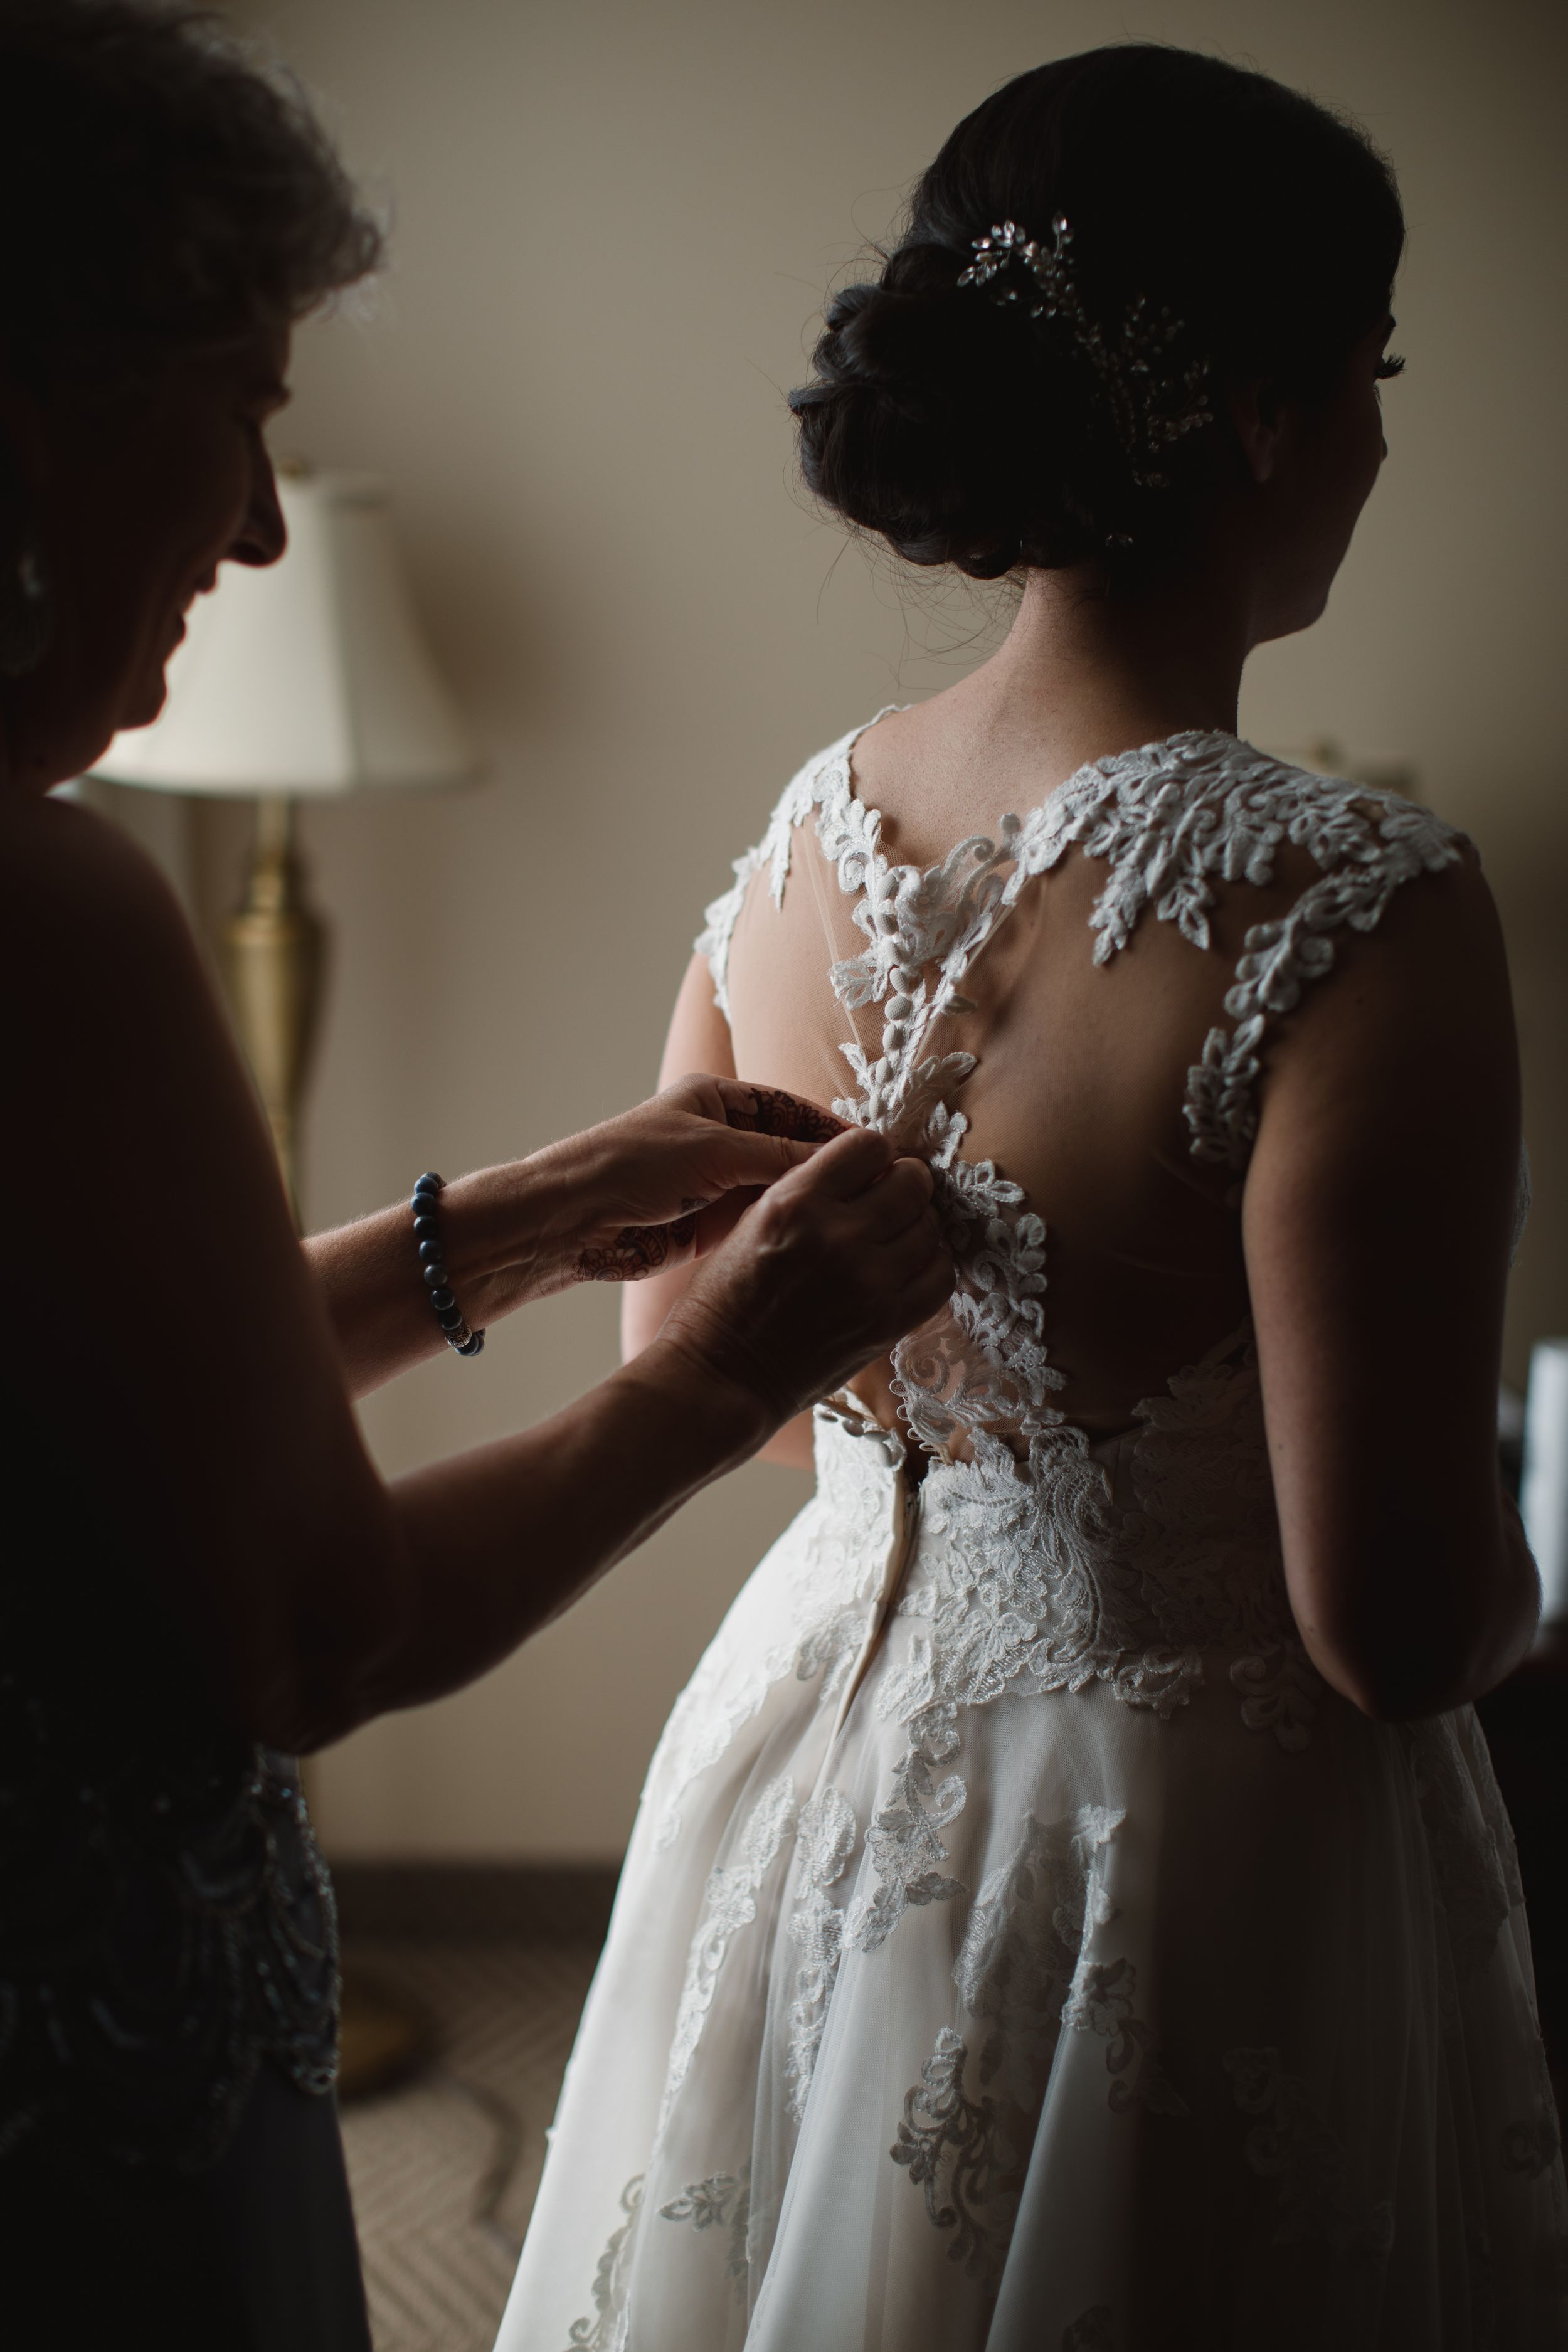 mom fastening buttons on a wedding dress